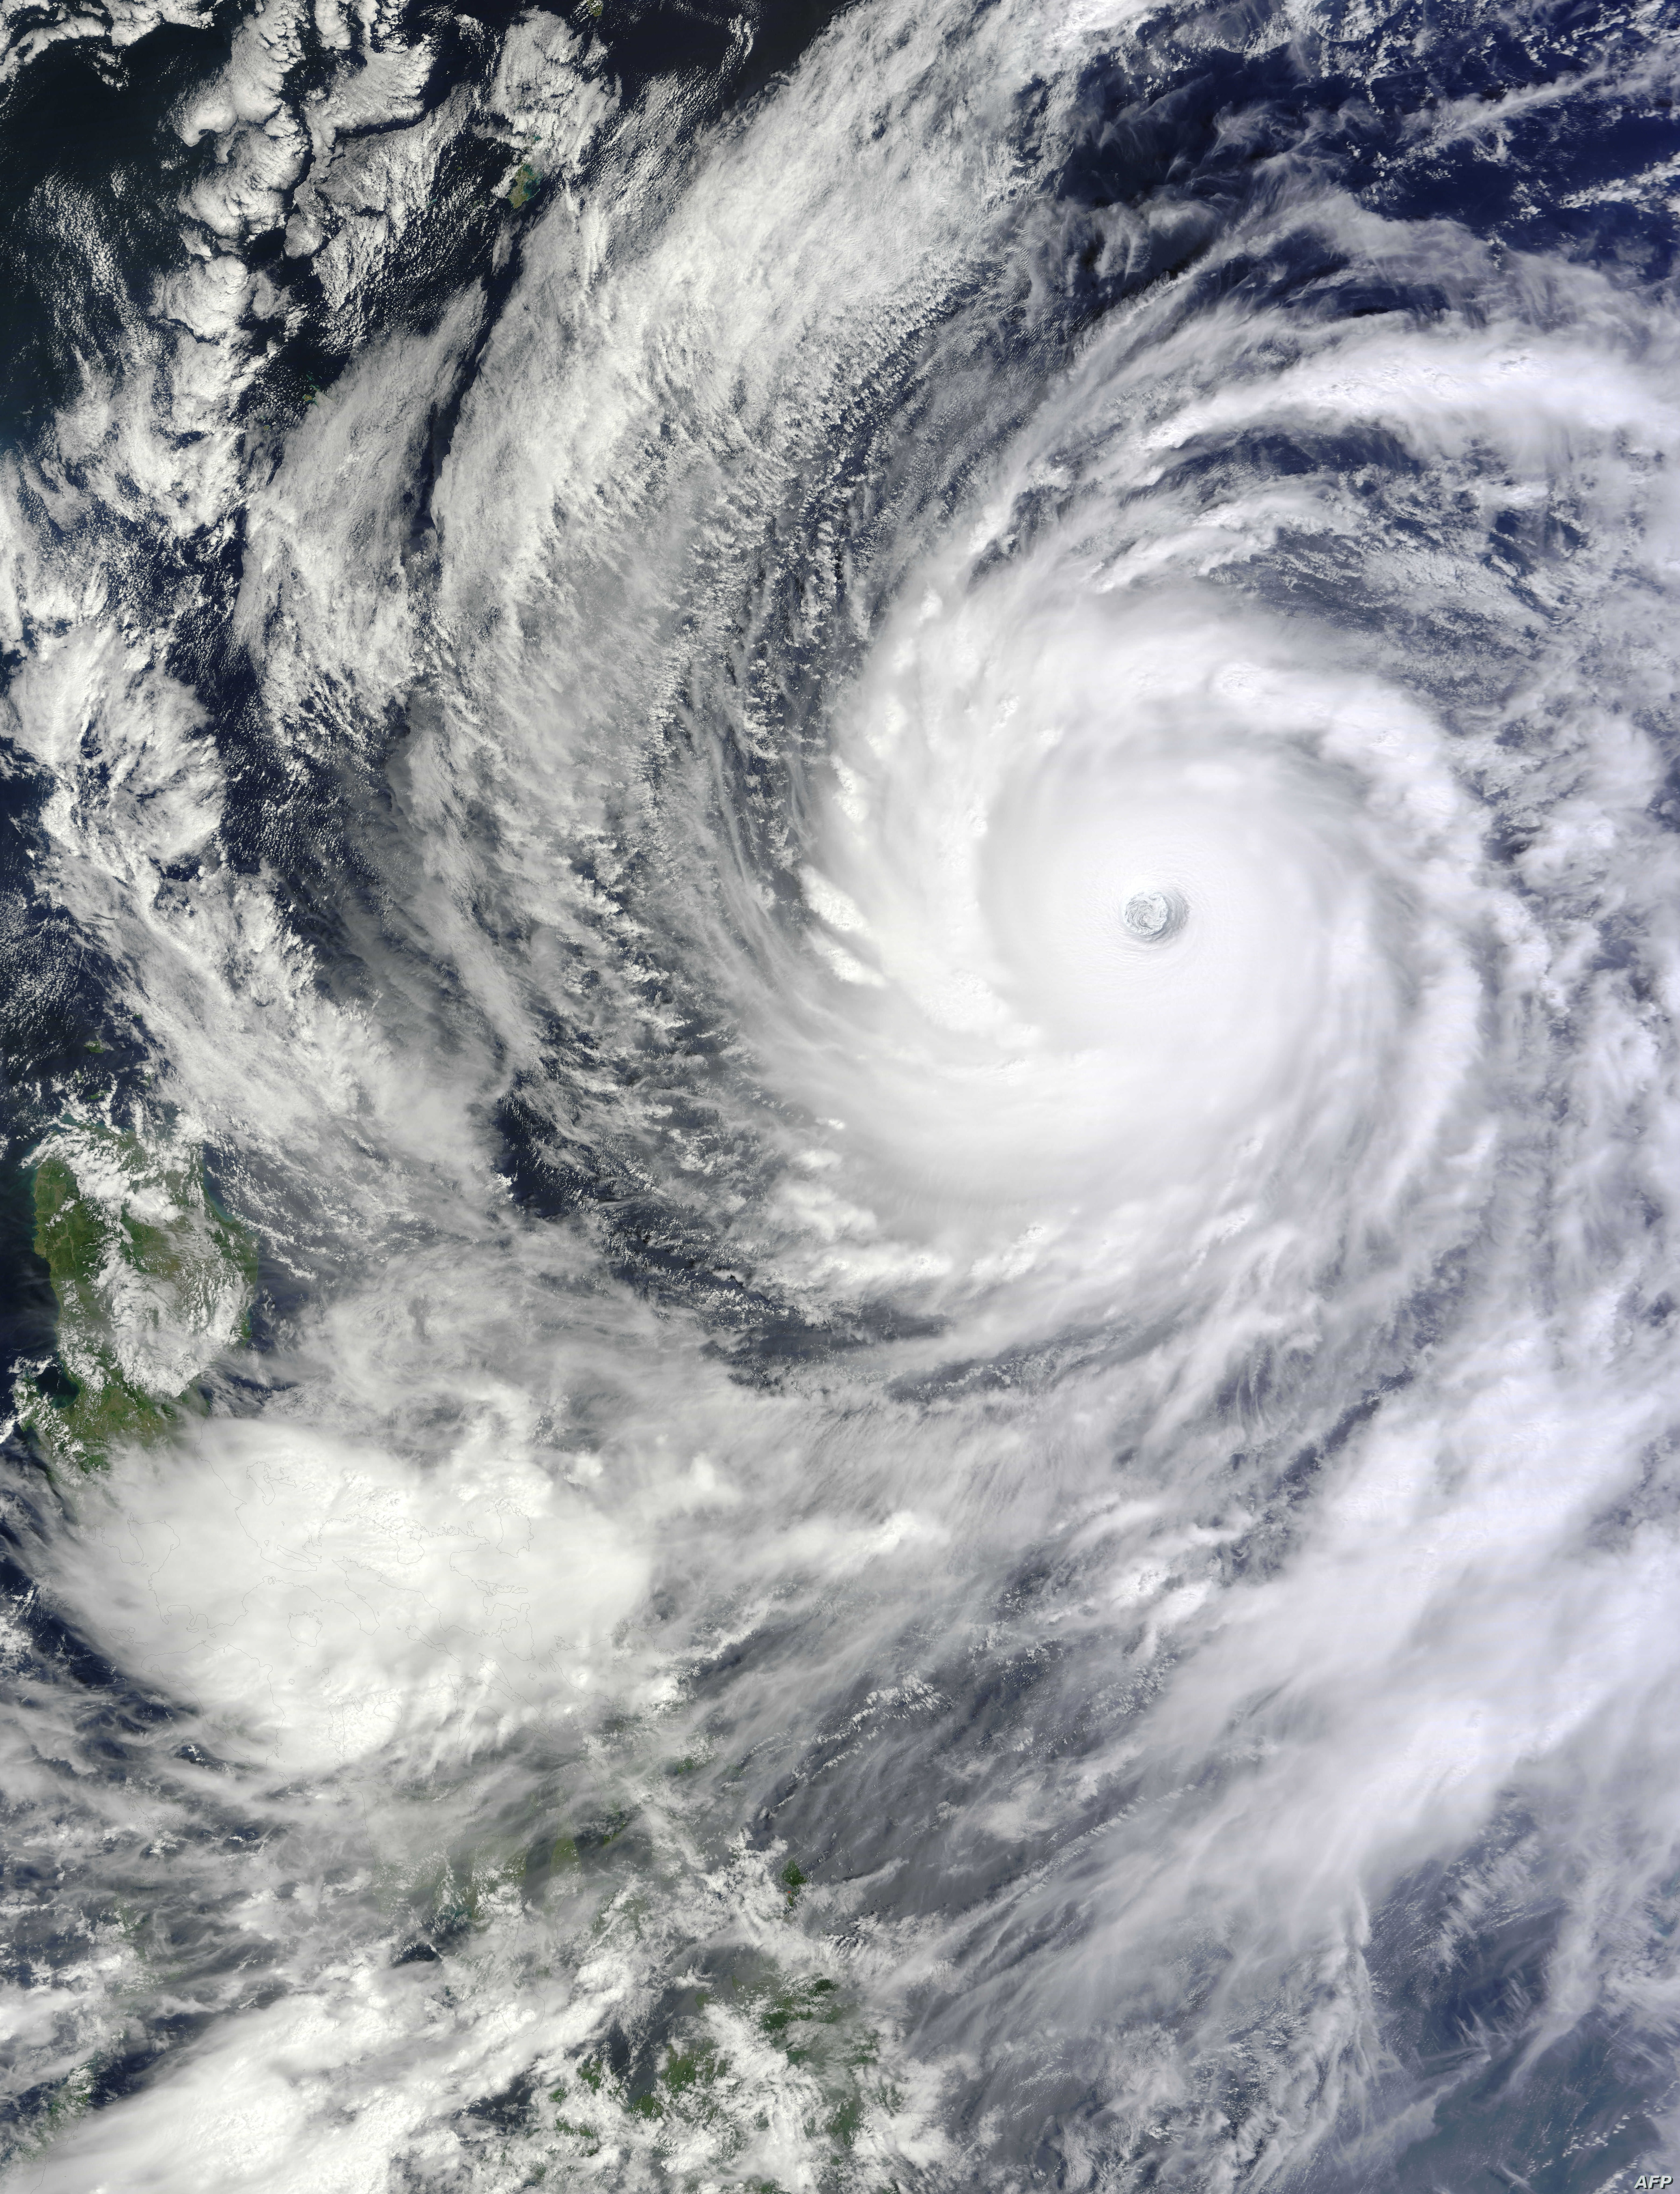 NASA satellite image shows Typhoon Vongfong in the western Pacific Ocean. Typhoon Vongfong is rapidly intensifying and is a dangerous threat to Japan this weekend, Oct. 8, 2014.